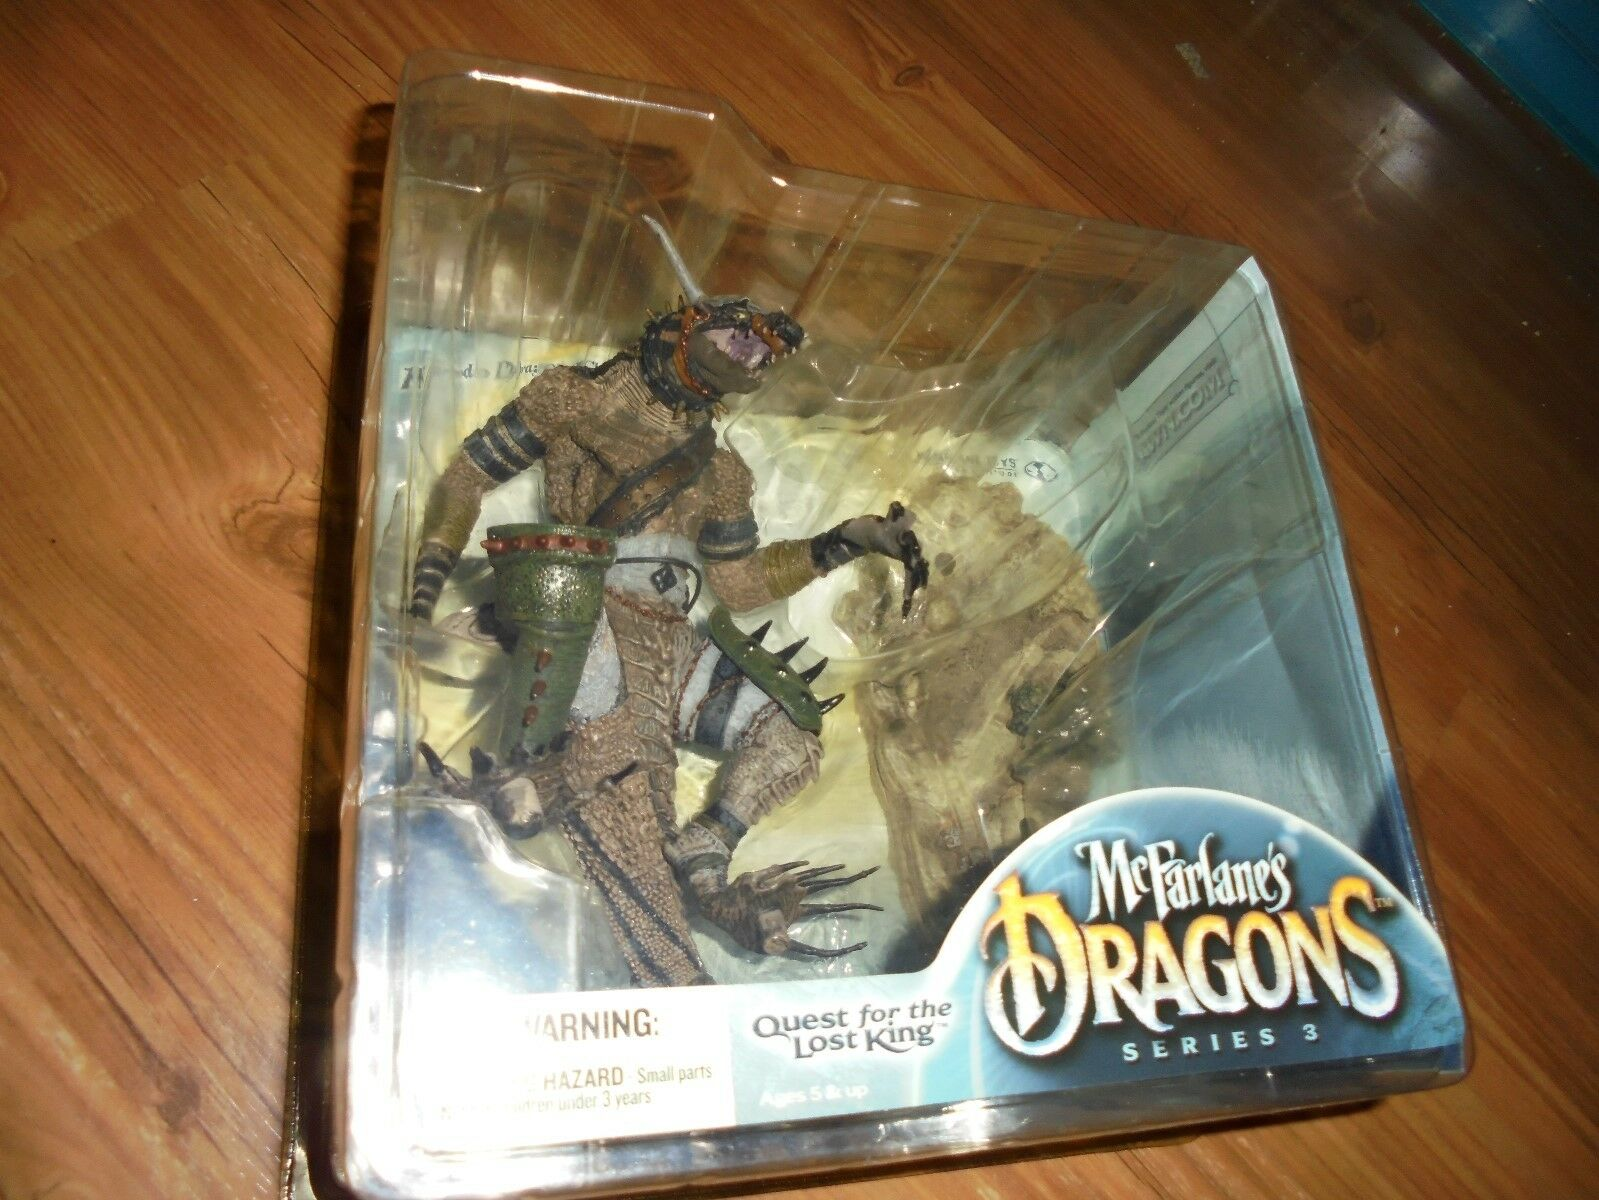 McFarlane's Dragons  Quest For The Lost King  Series 3  KOMODO DRAGON CLAN  2006